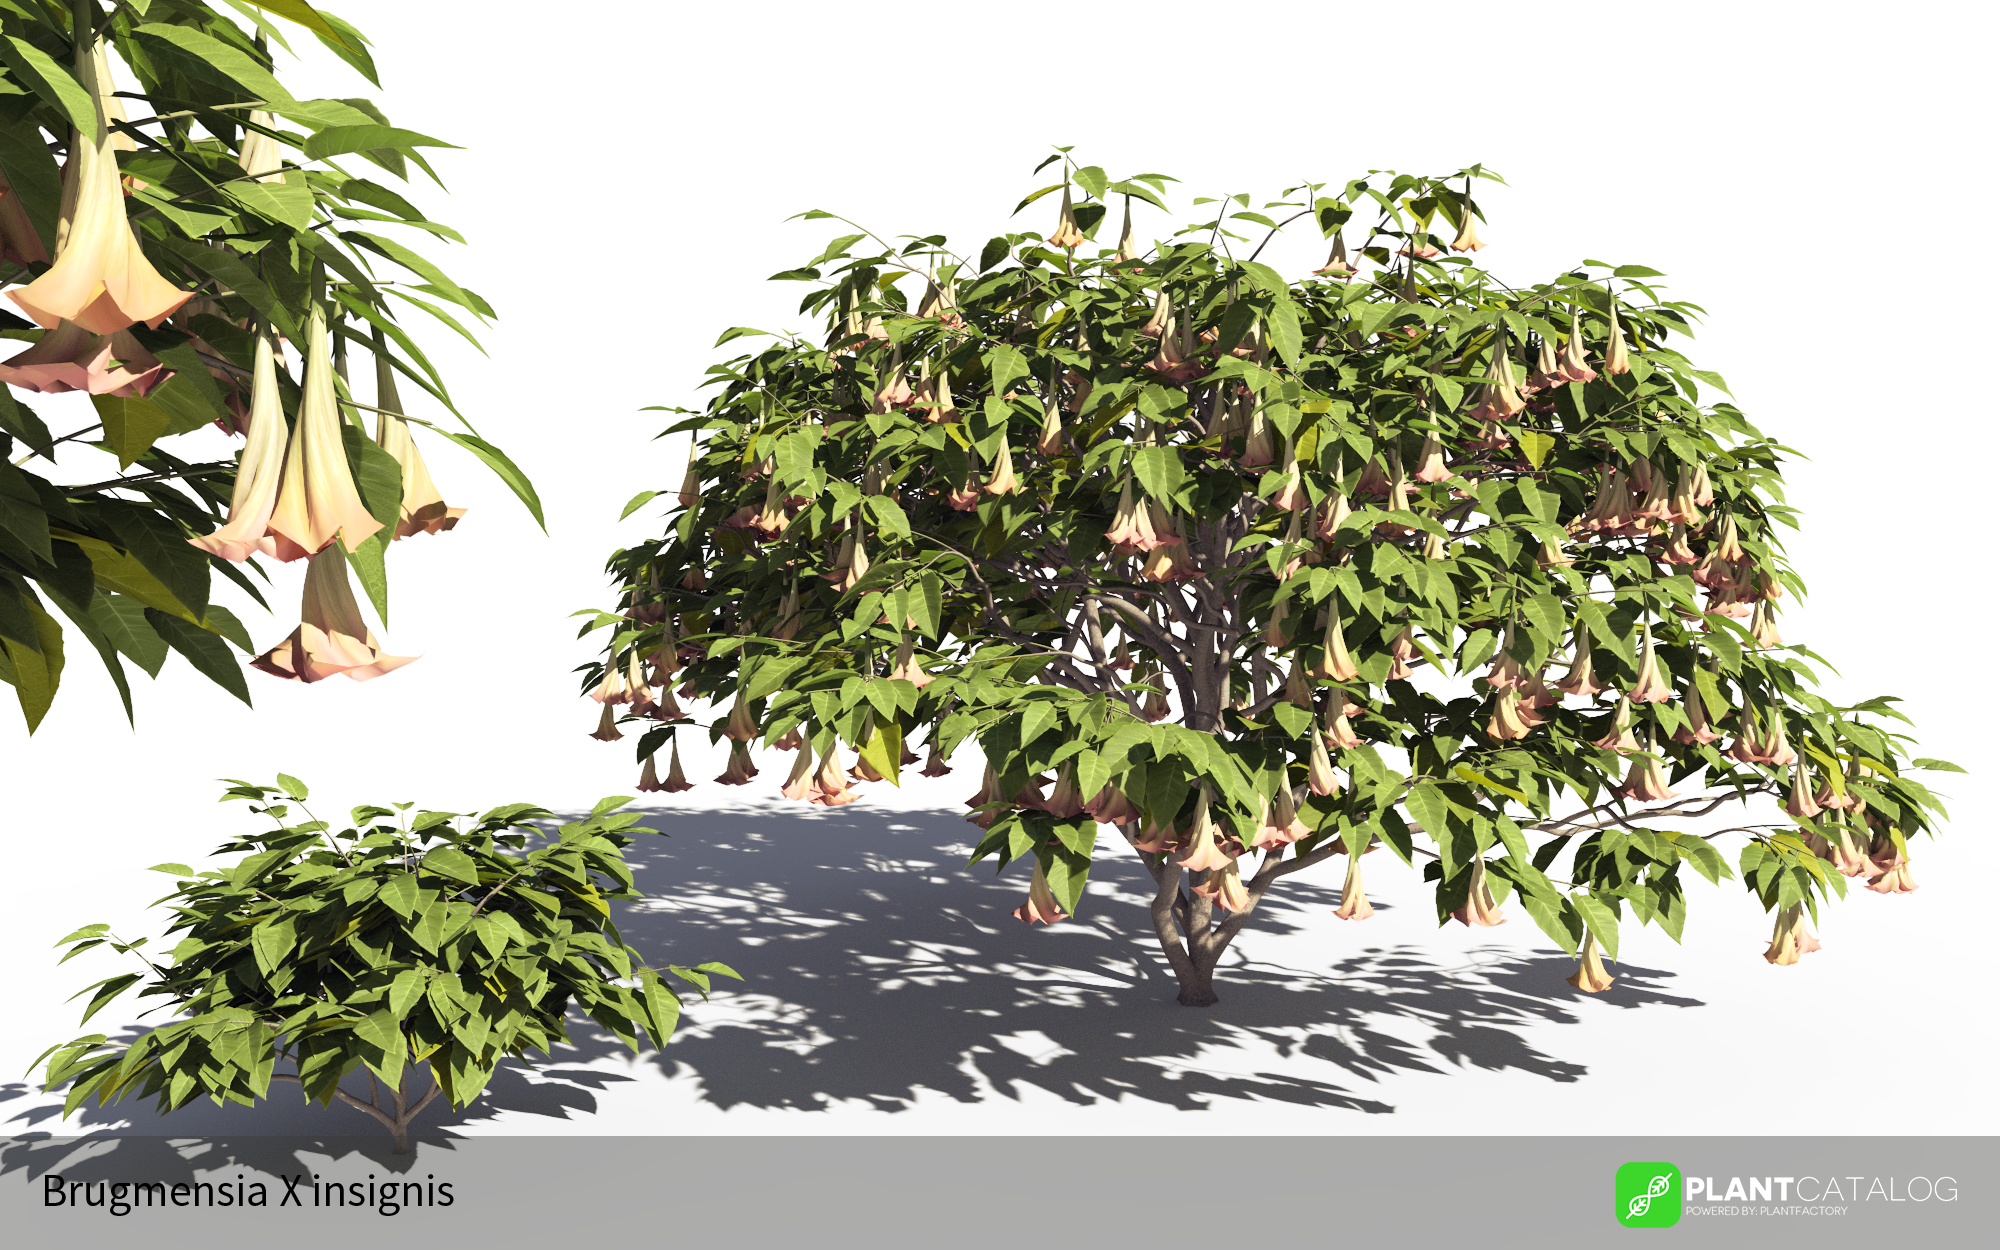 3D model of the Magnificent angel's trumpet  - Brugmansia X insignis - from the PlantCatalog, rendered in VUE